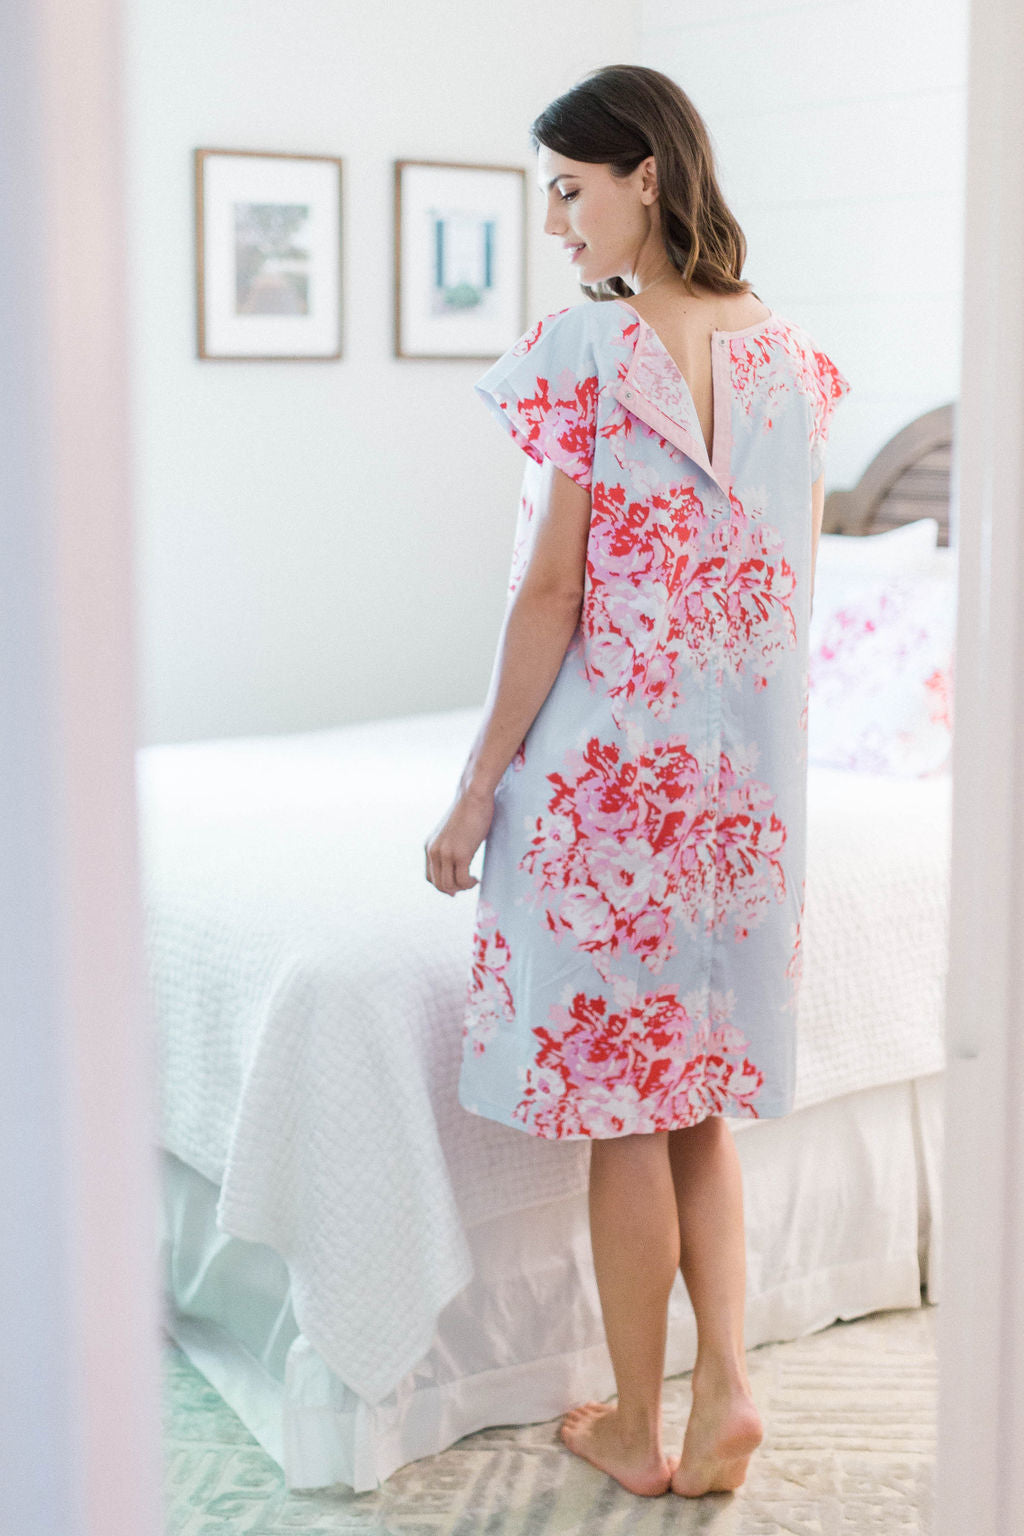 fe32bc2d78973 Mae Gownie Maternity Delivery Labor Hospital Birthing Gown – Baby Be ...